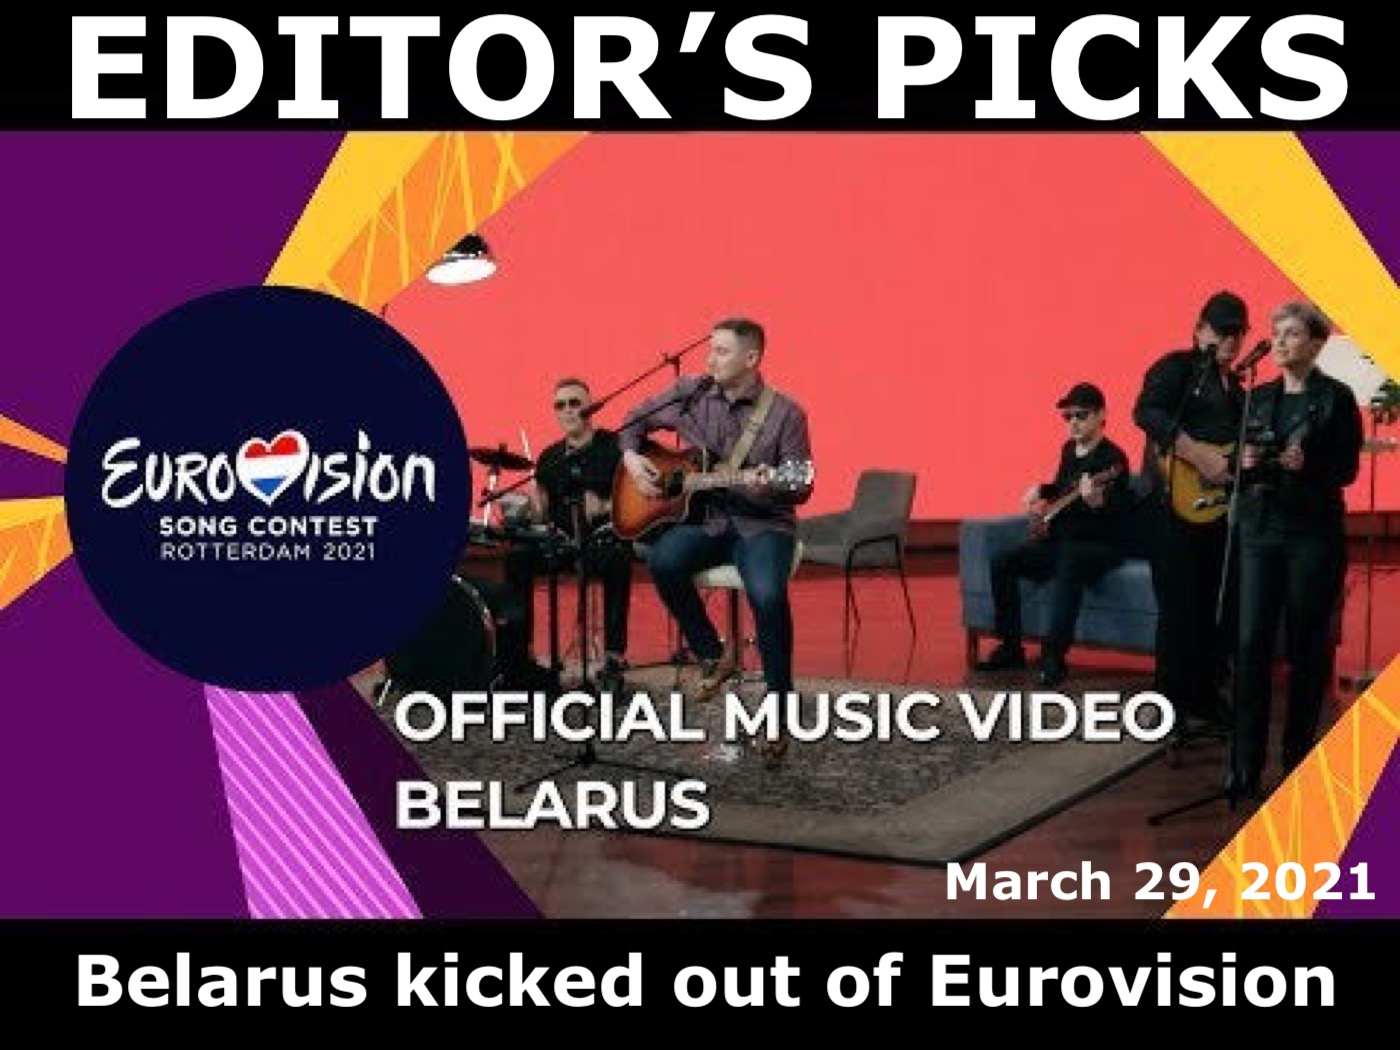 bne IntelliNews Editor's Picks --  Belarus disqualified from Eurovision Song Contest after submitting a second political song